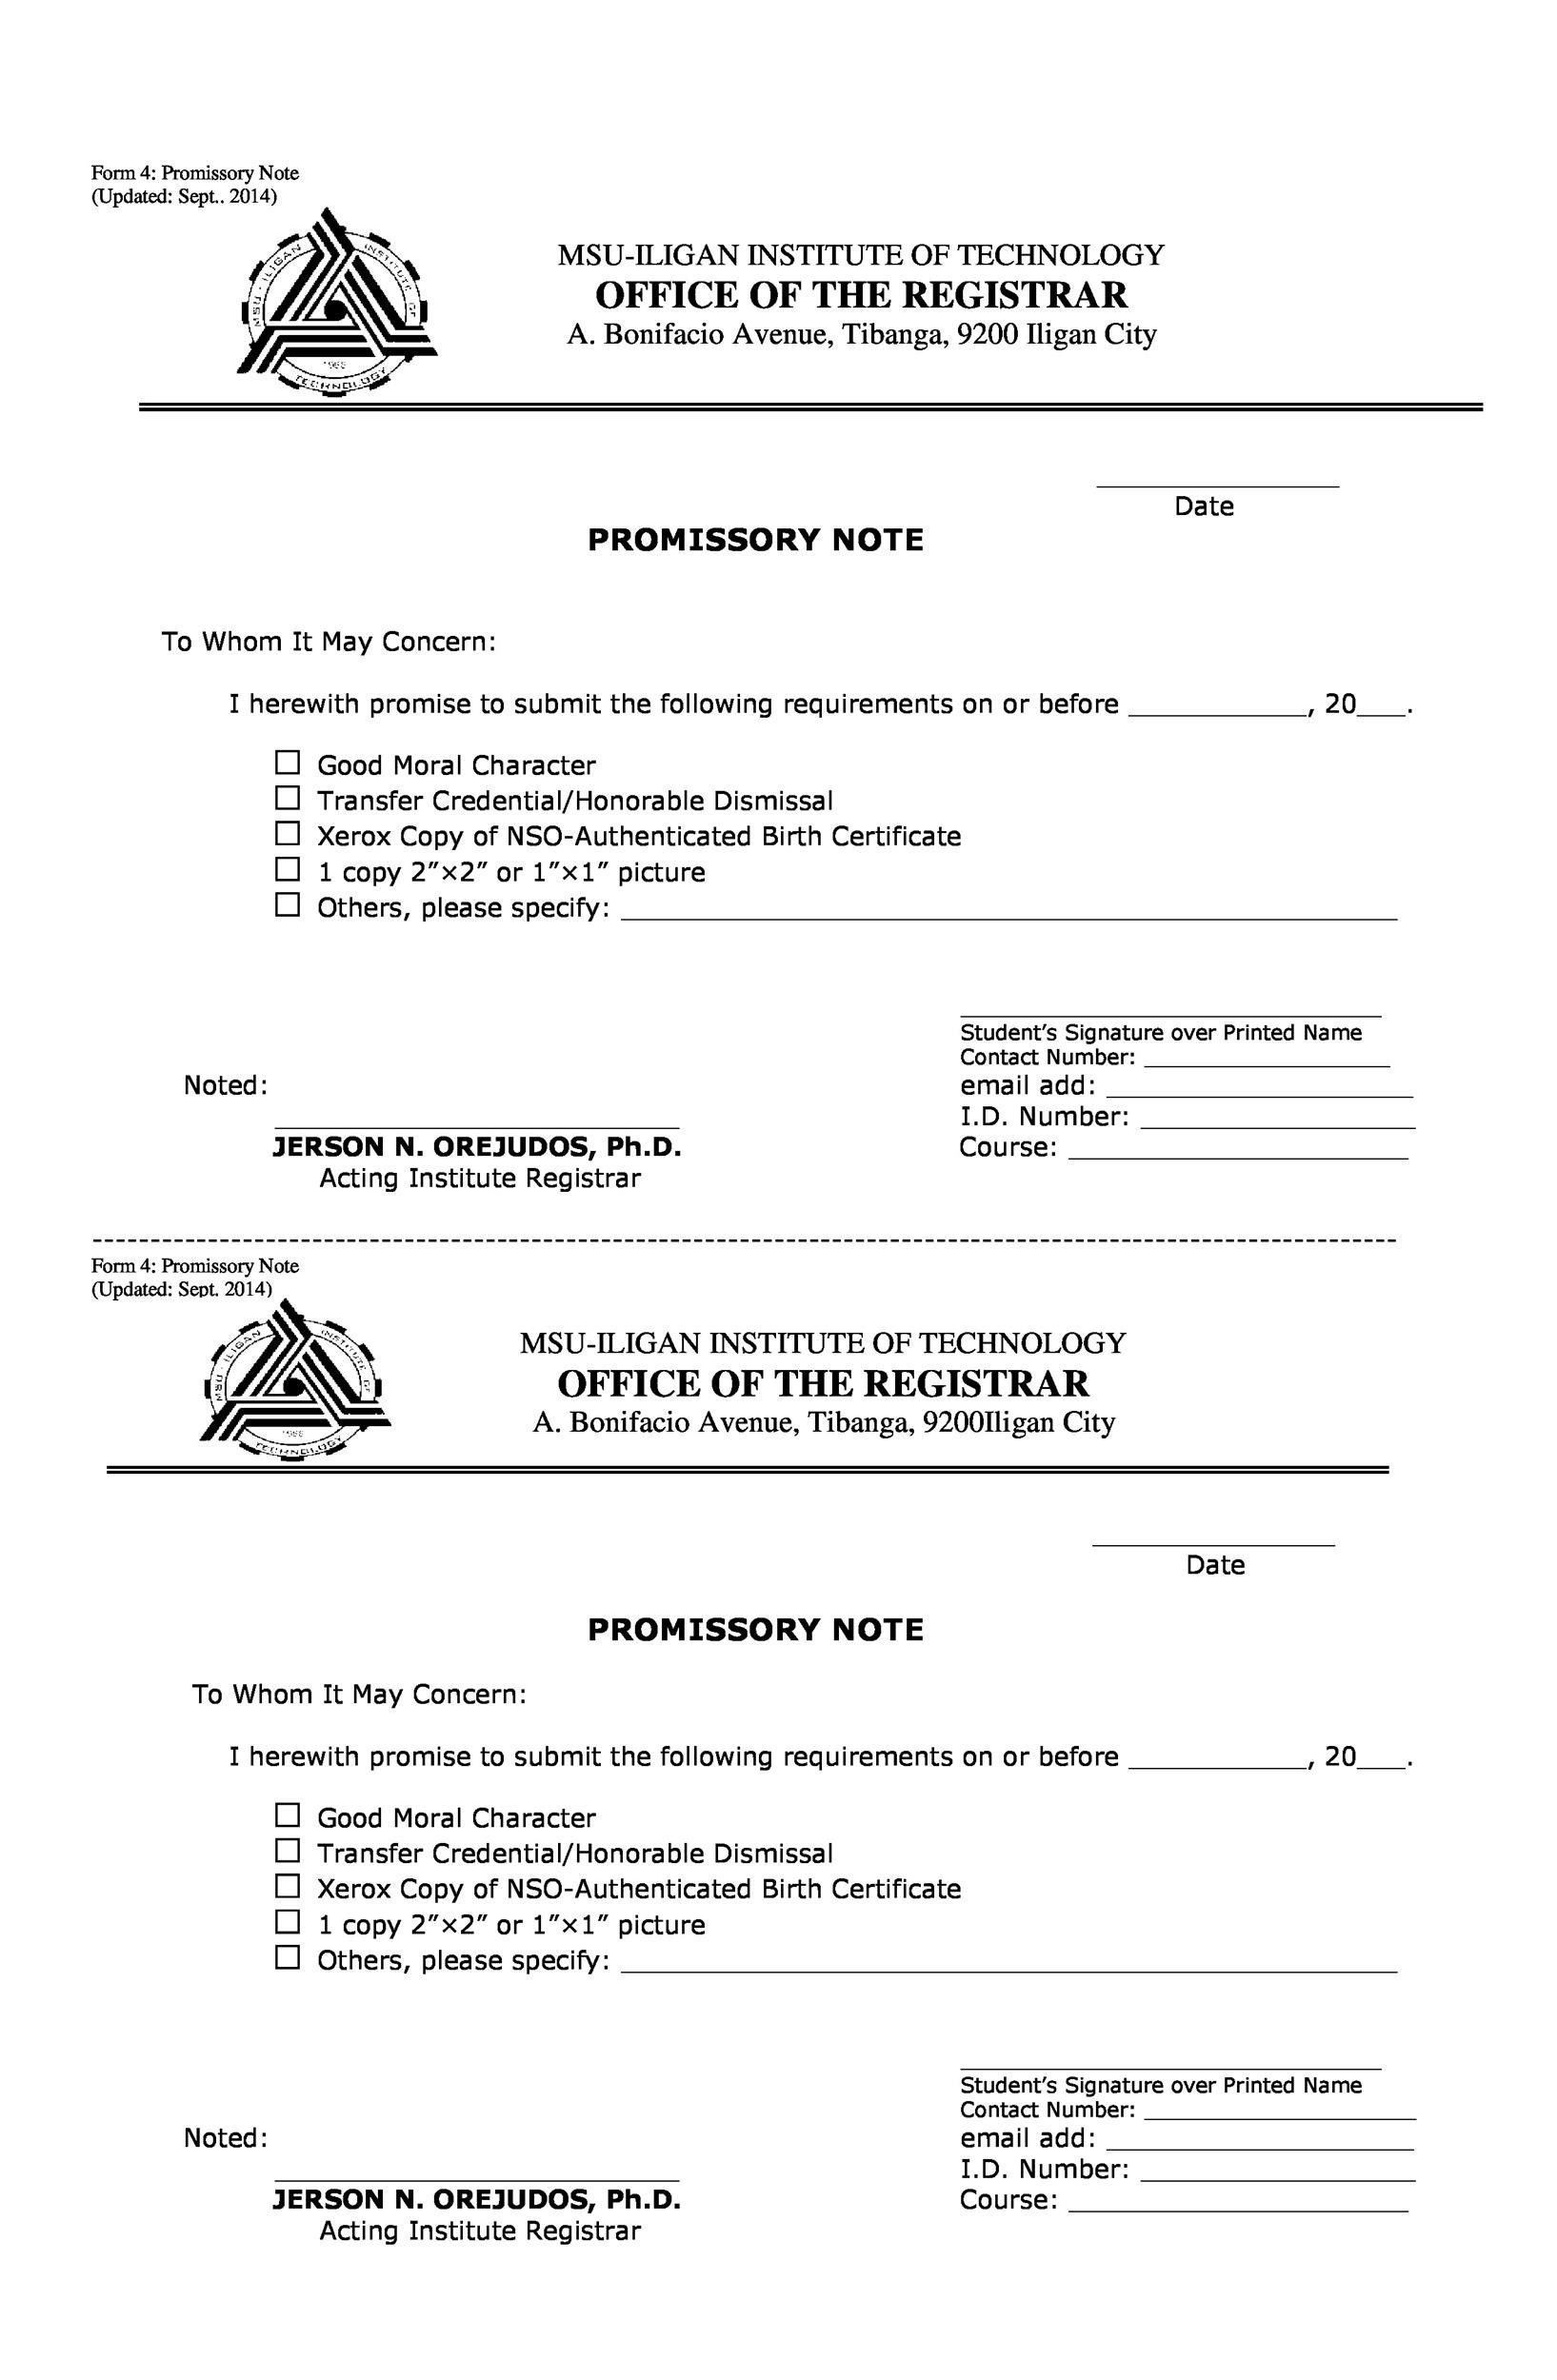 Printable Promissory Note Template 09  Free Printable Promissory Note Template